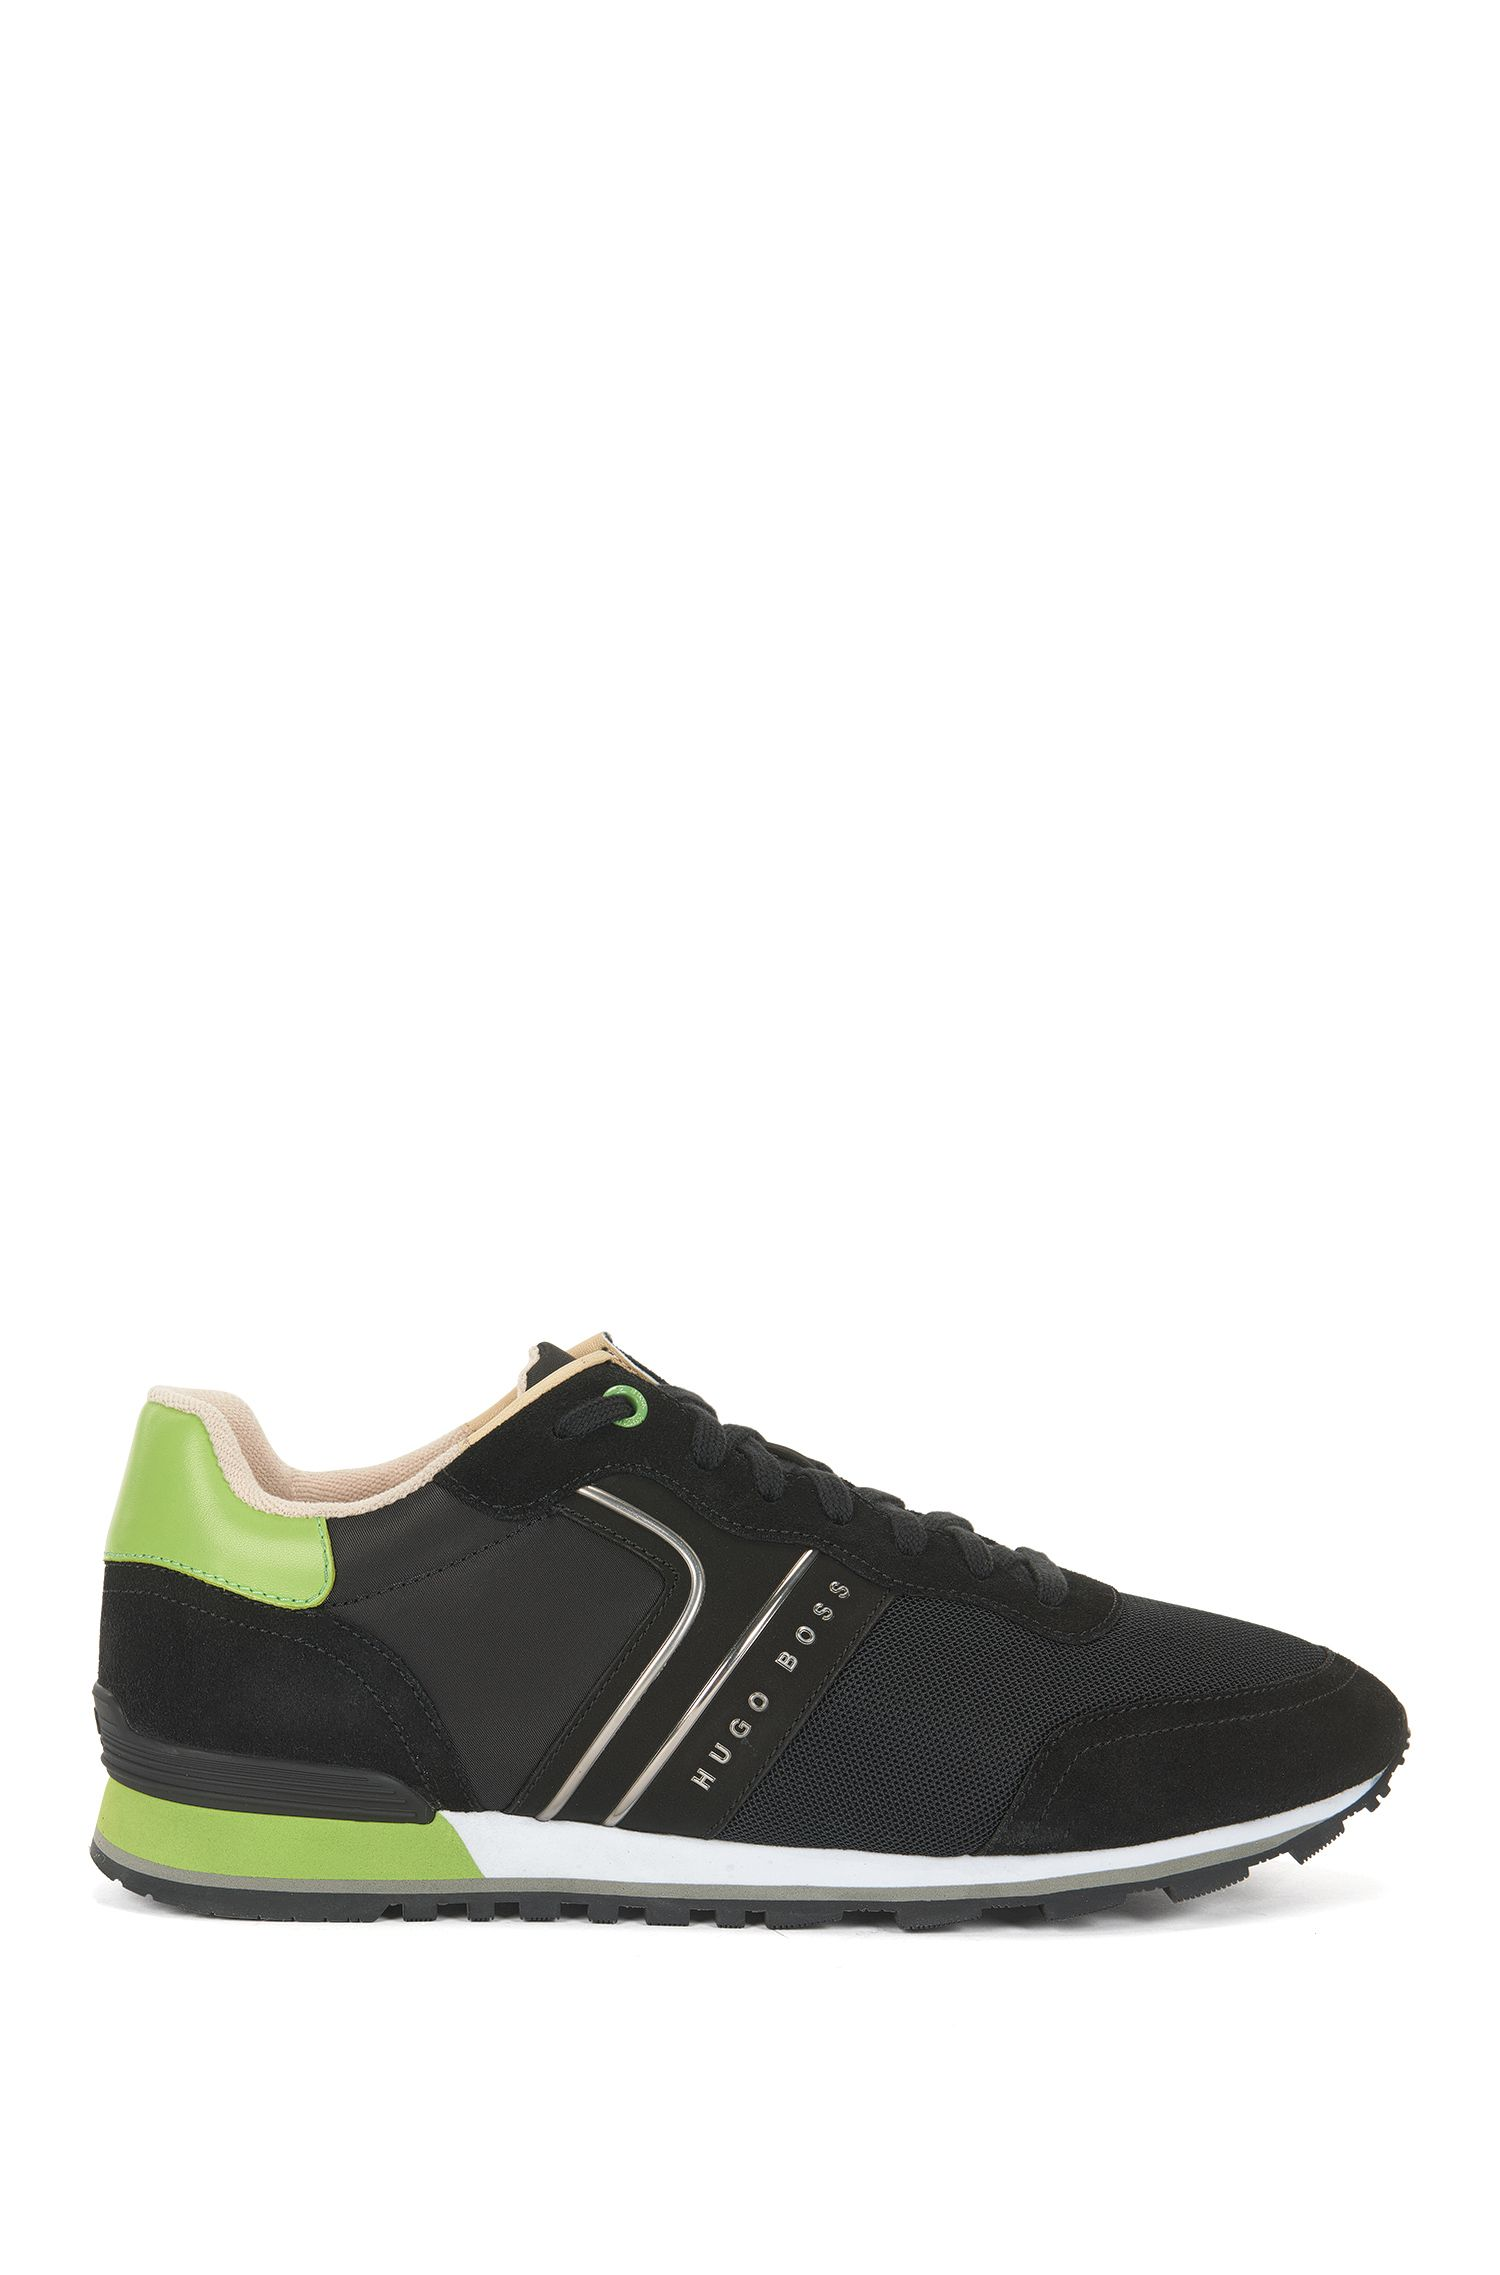 Suede Sneaker | Parkour Runn Nymx